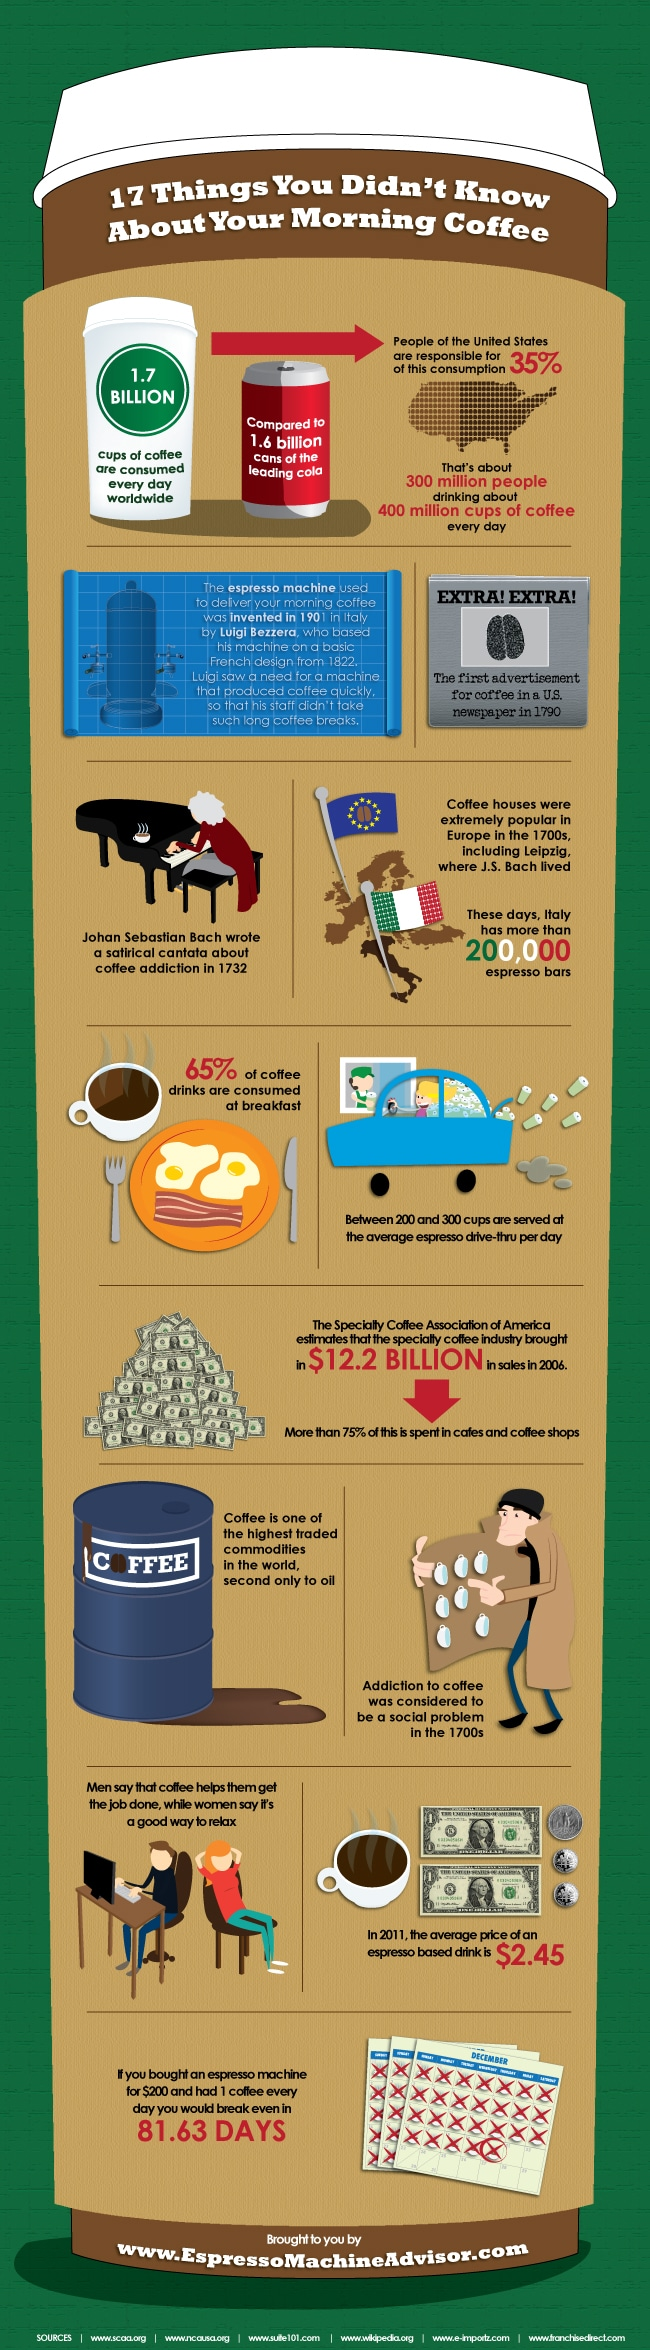 17 Things You Didn't Know About Your Coffee [Infographic]